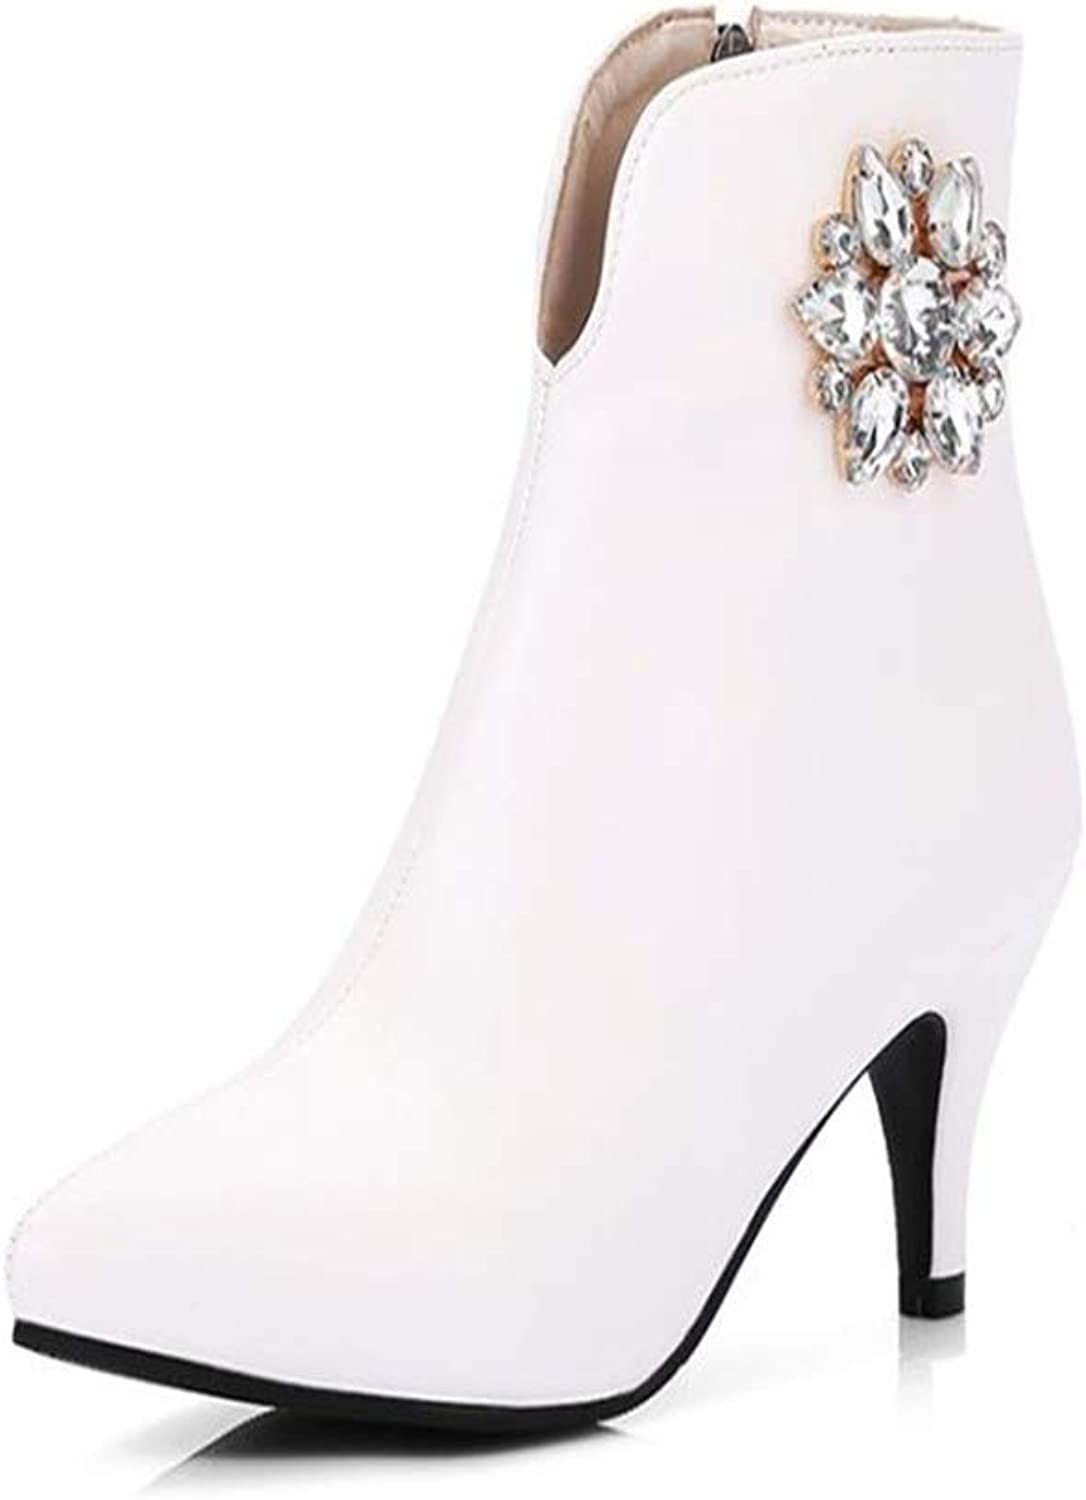 Gusha Women's Stiletto Boots Ankle Boots Pointed Toe Ankle Boots Elegant high Heels